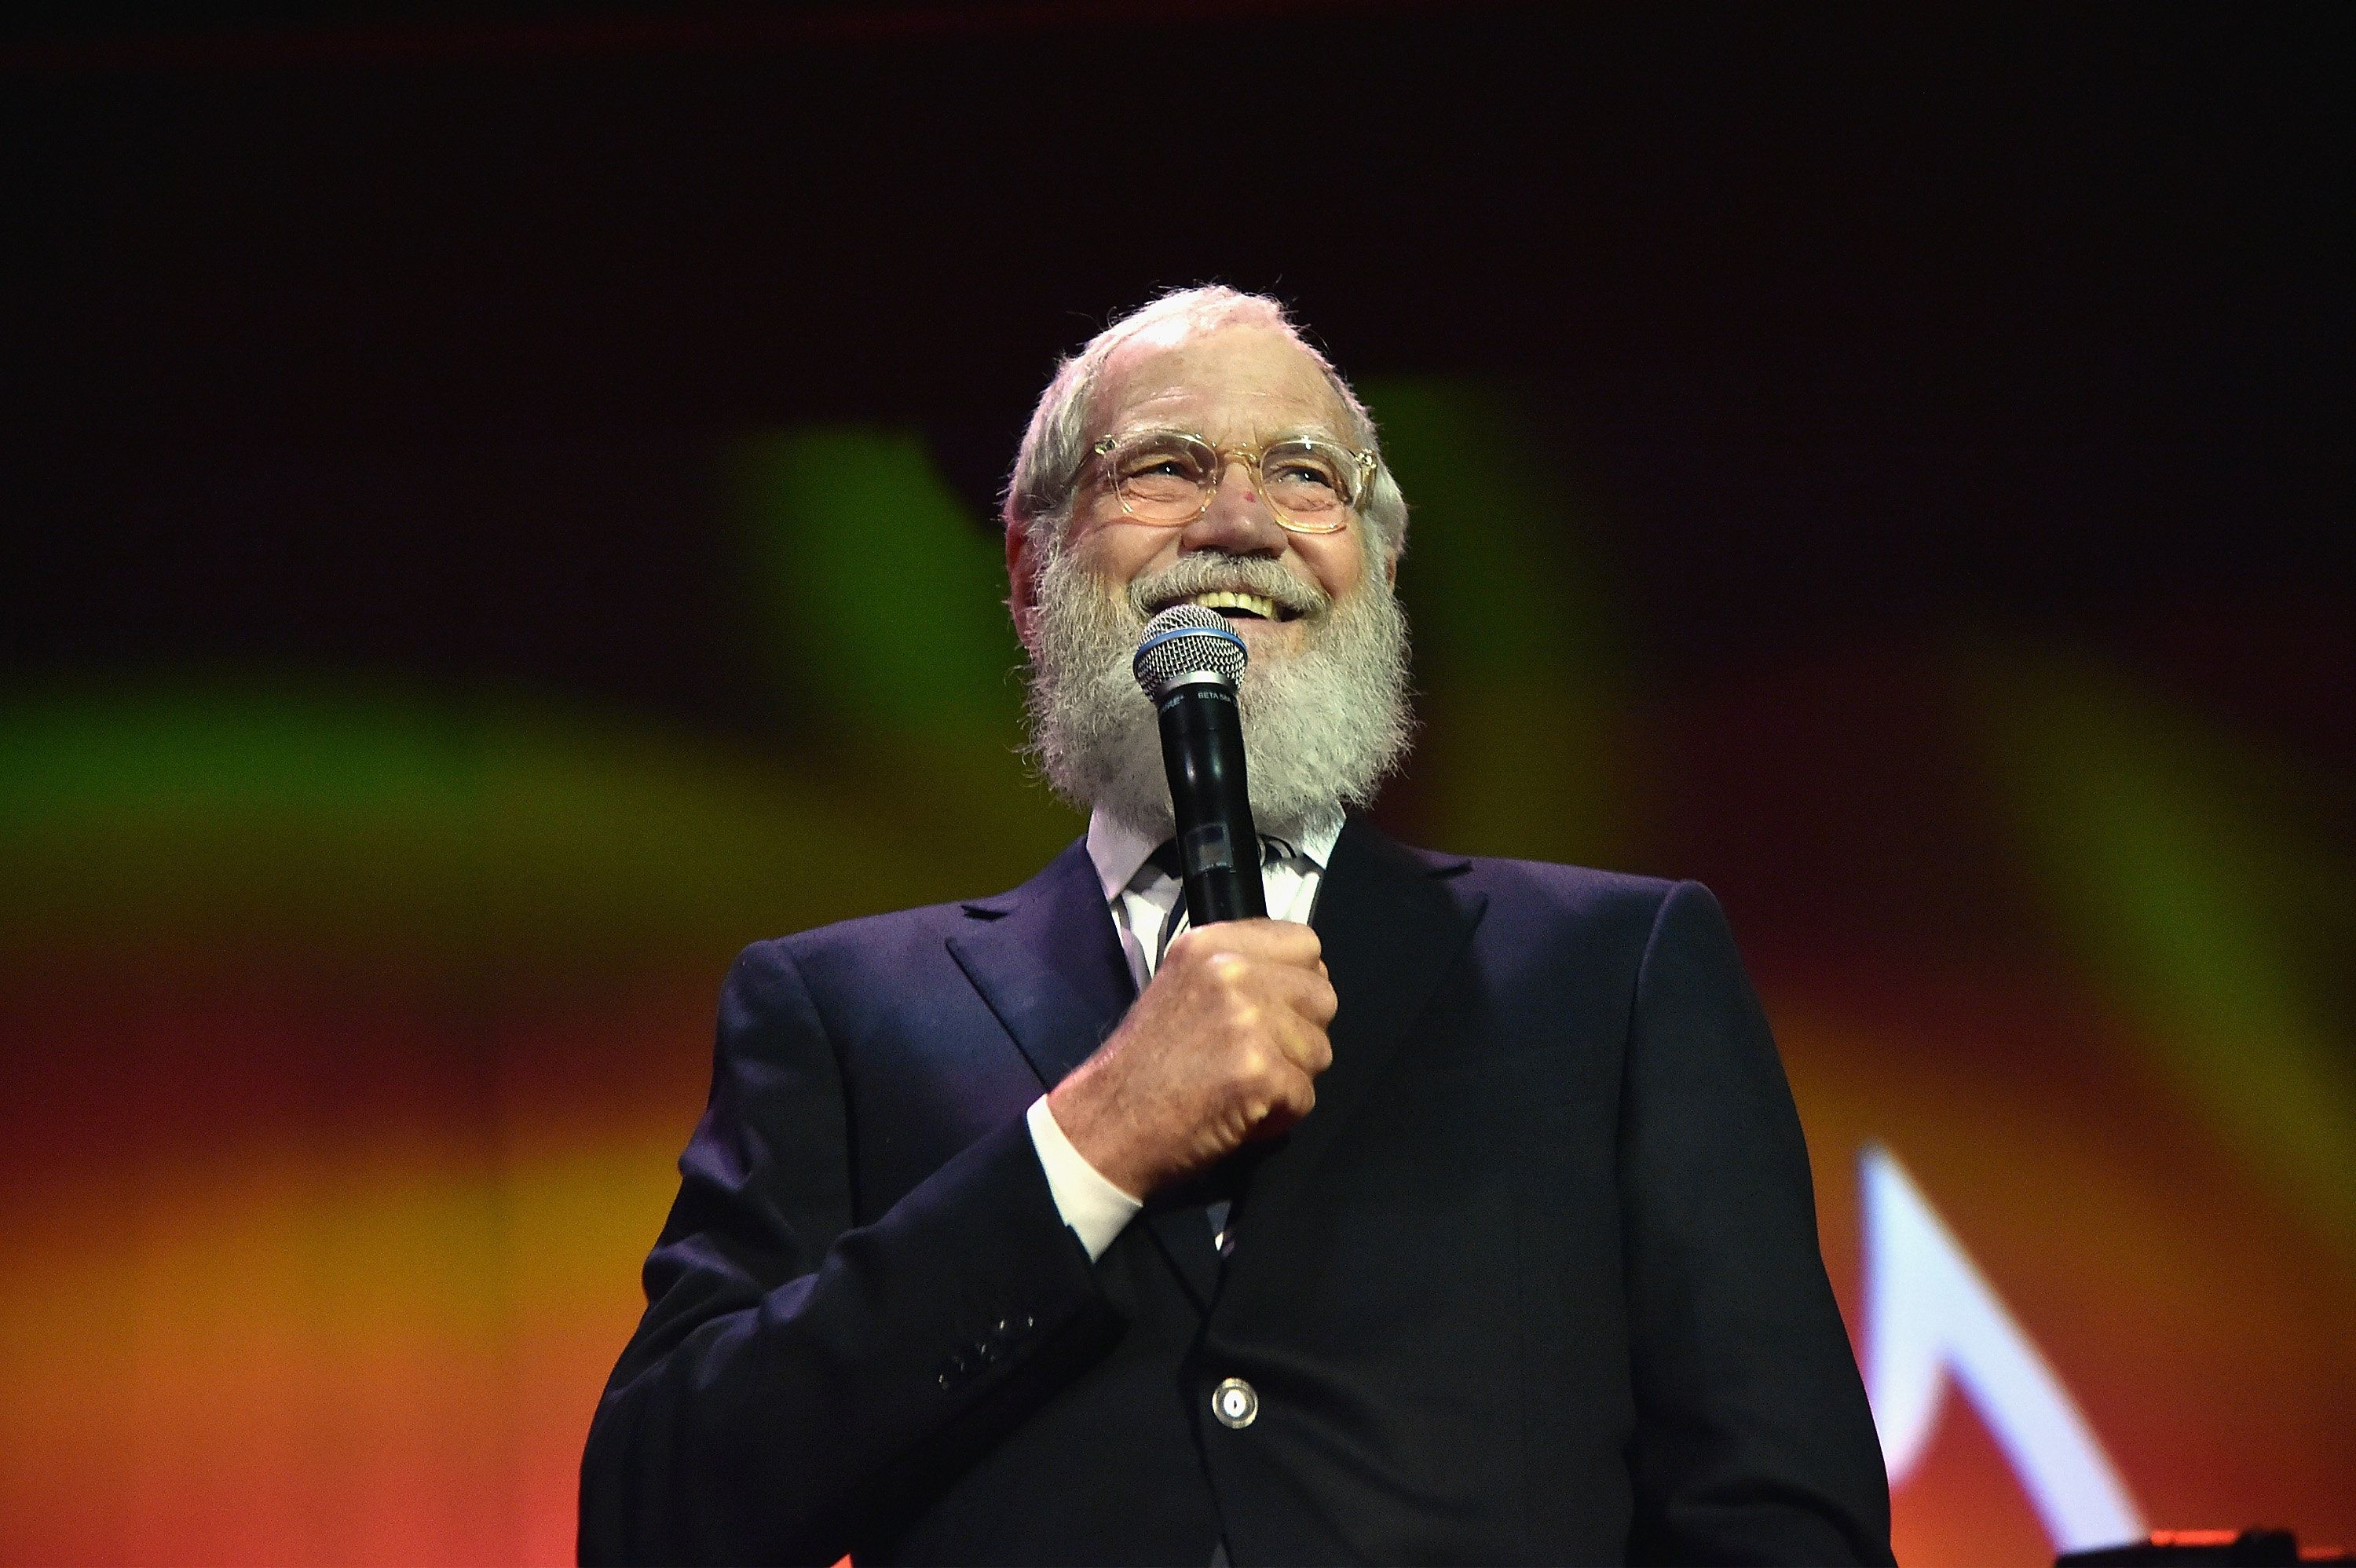 """NEW YORK, NY - NOVEMBER 14:  David Letterman speaks onstage during the Michael J. Fox Foundation """"A Funny Thing Happened On The Way To Cure Parkinson's"""" Gala at The Waldorf=Astoria on November 14, 2015 in New York City.  (Photo by Mike Coppola/MJF2015/Getty Images)"""